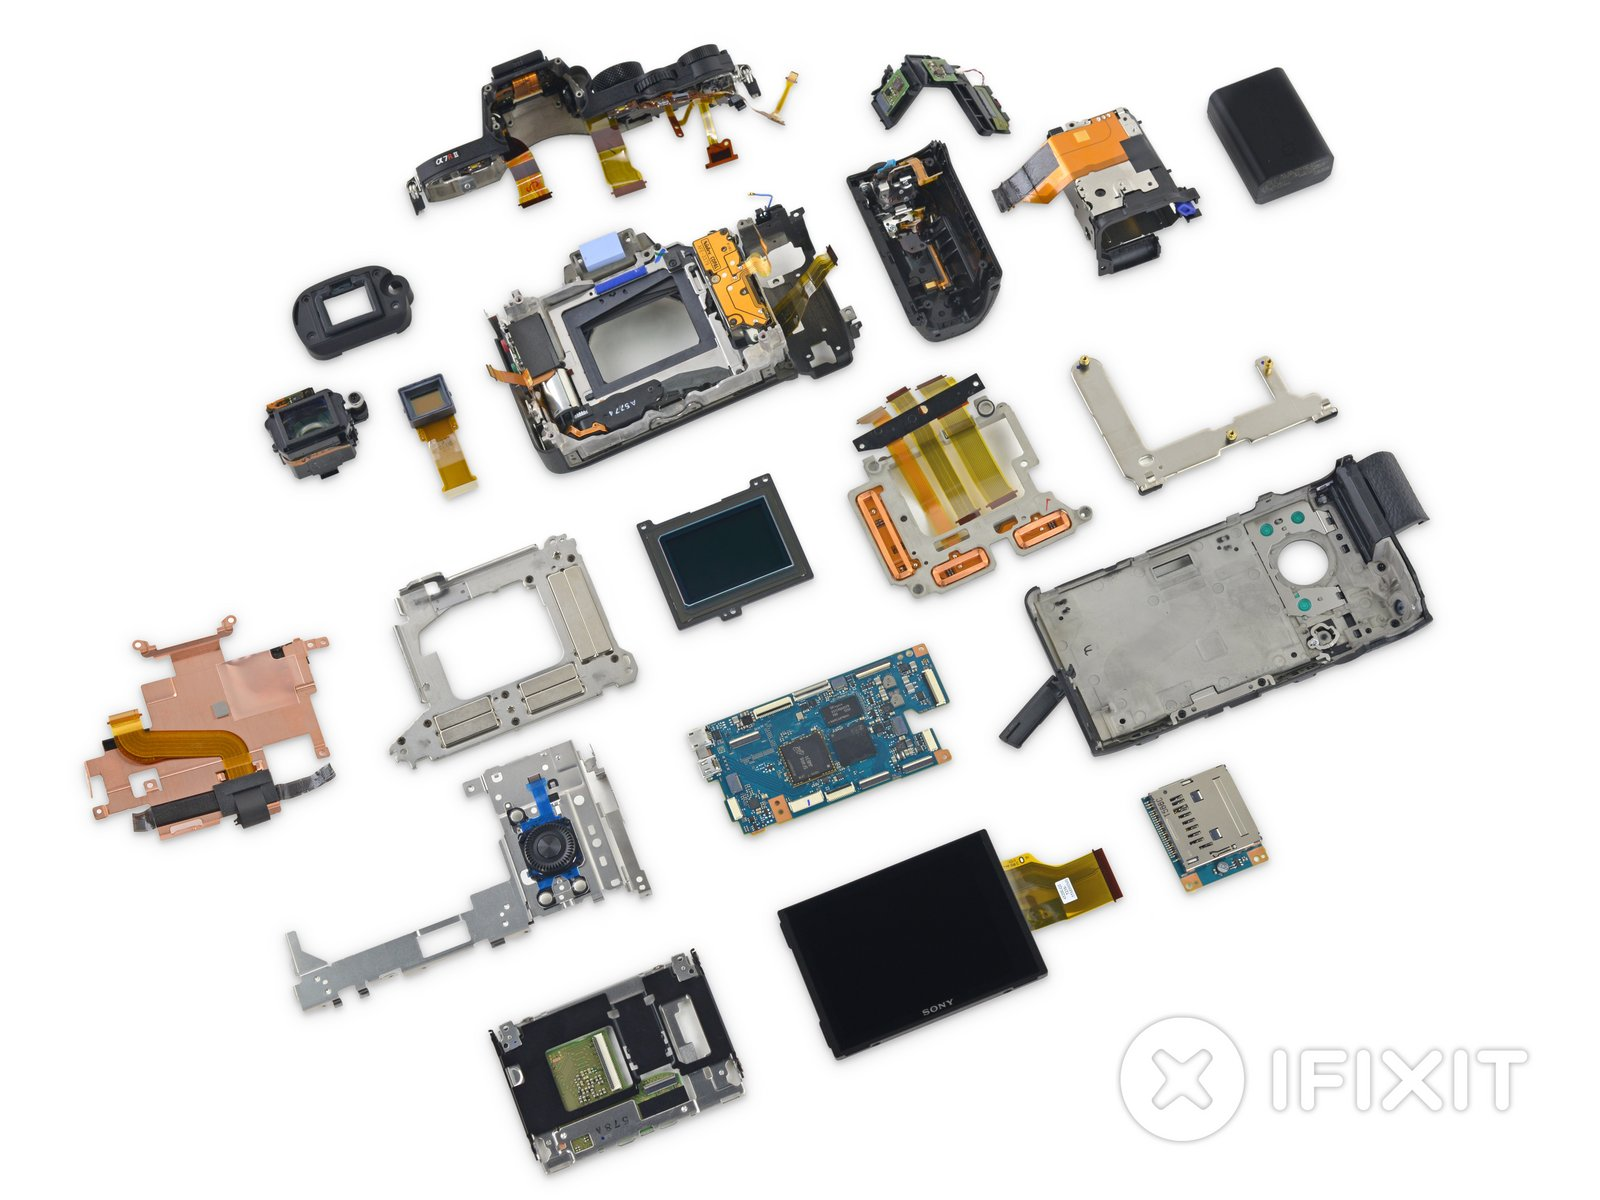 The Sony AyR II torn to bits and pieces... (ifixit.com)